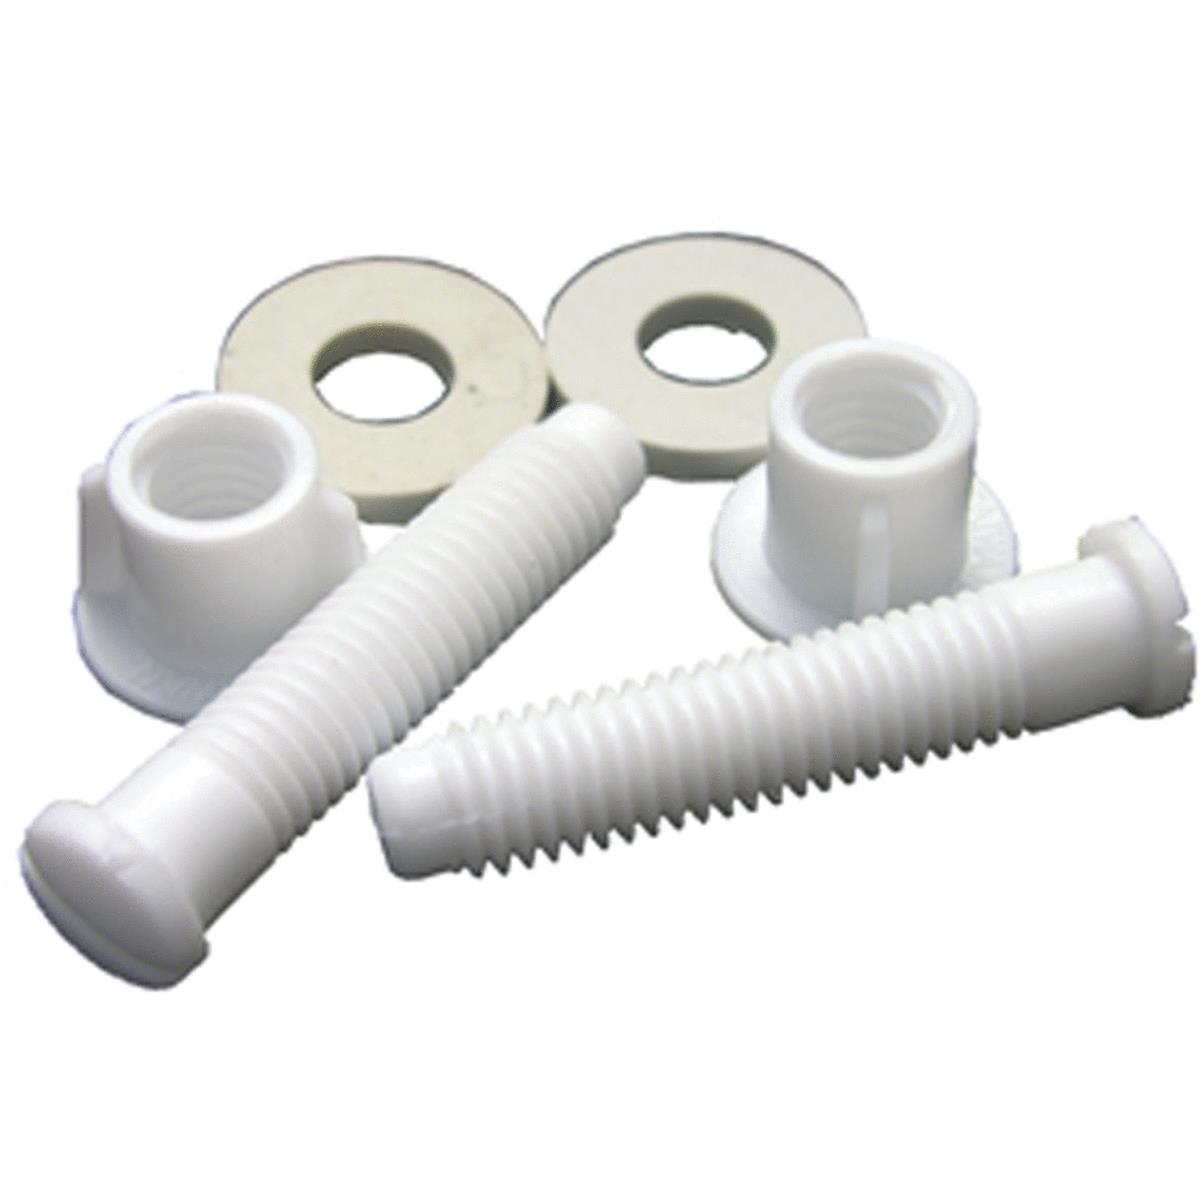 Toilet Seat Hinges Bolt//Nut And Washer